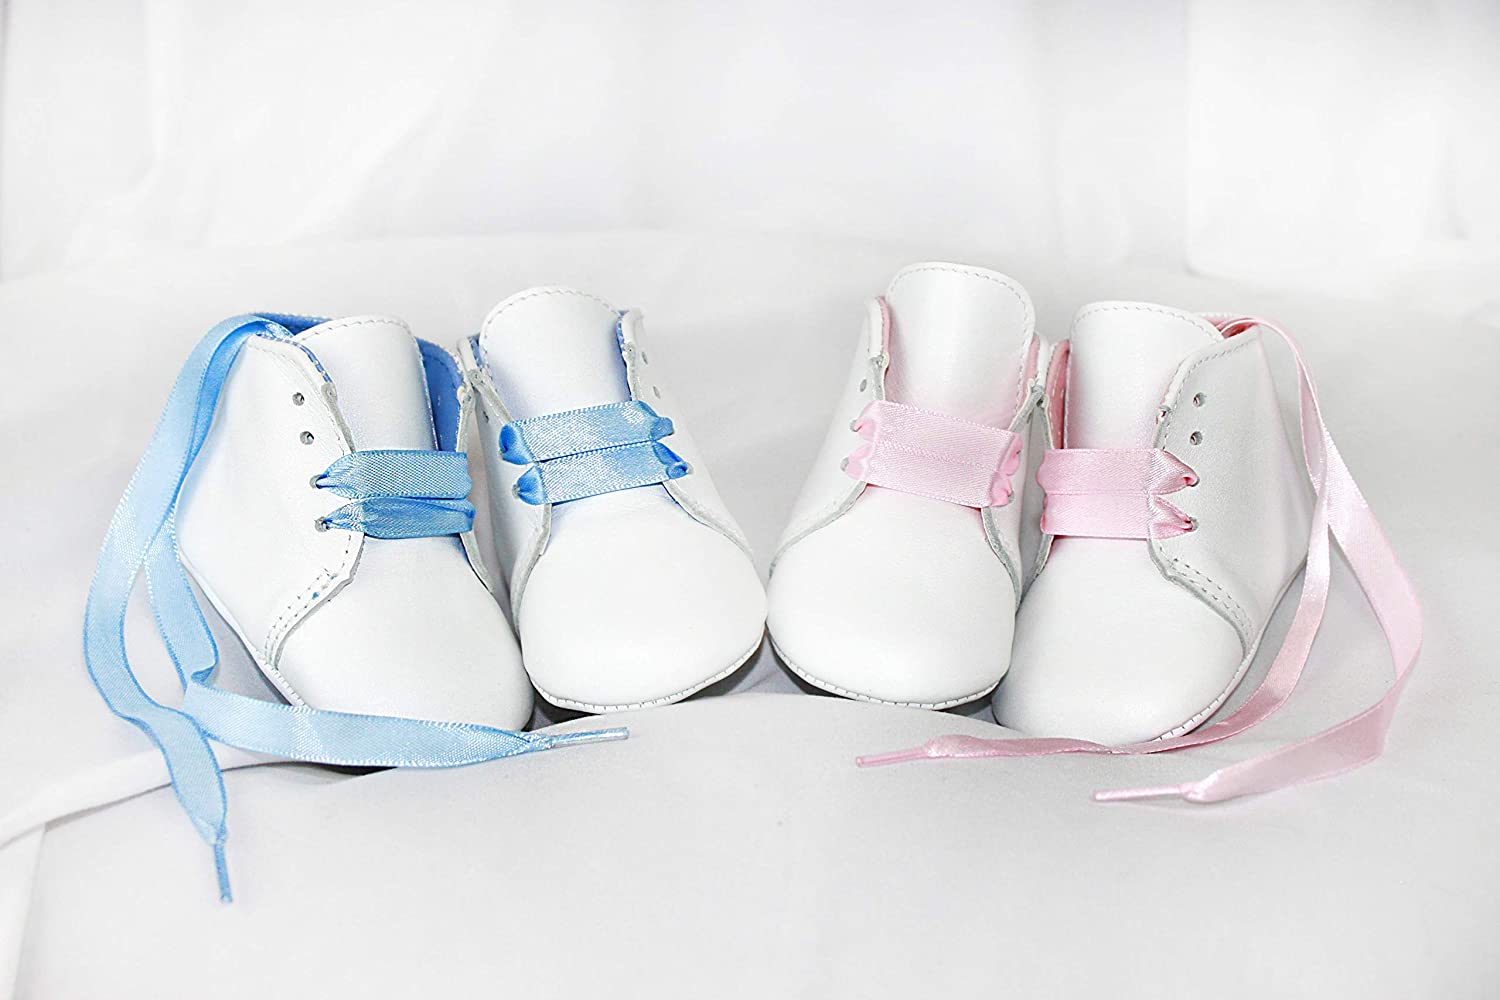 Babyshoe.com Personalized Leather Newborn Lace Up Shoes with Blue Ribbon Laces